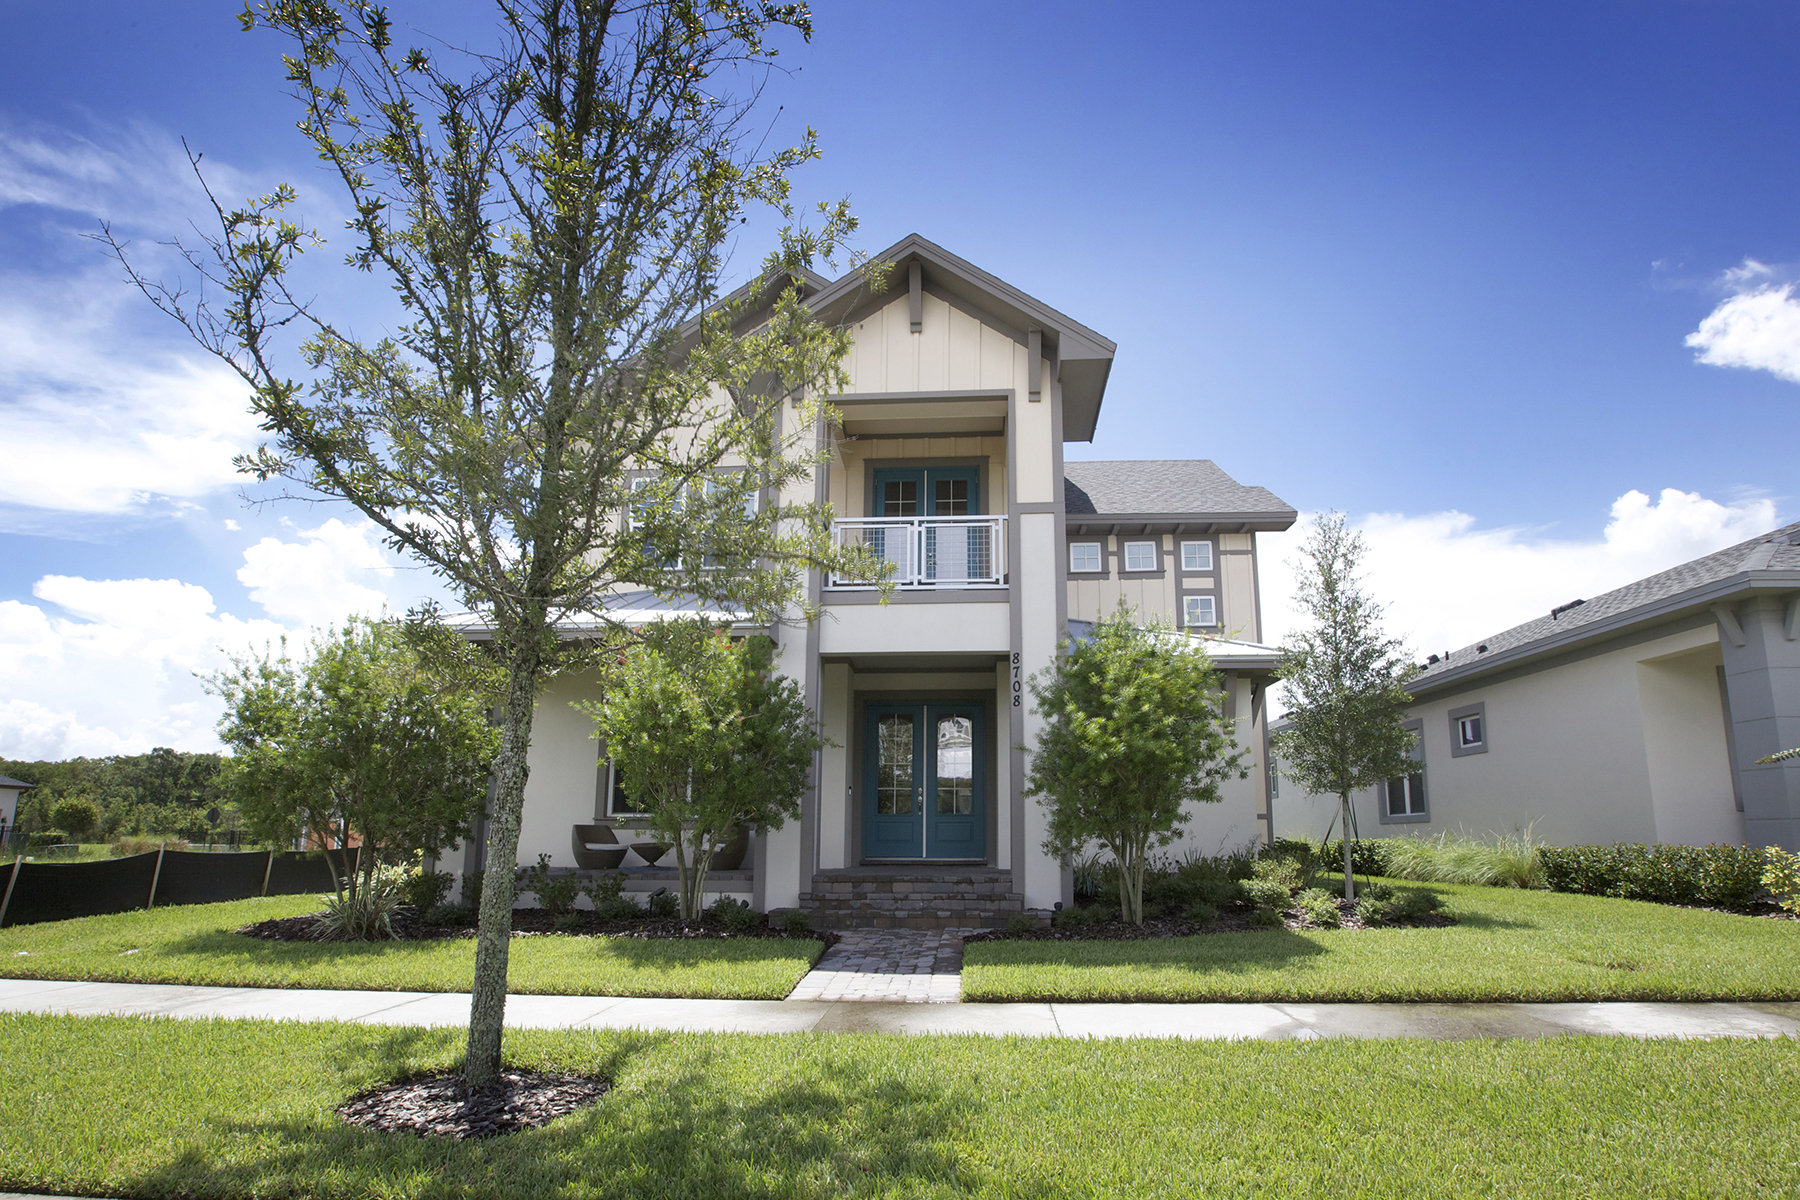 Single Family Home for Sale at LAUREATE PARK 8708 Reymont St Orlando, Florida, 32827 United States